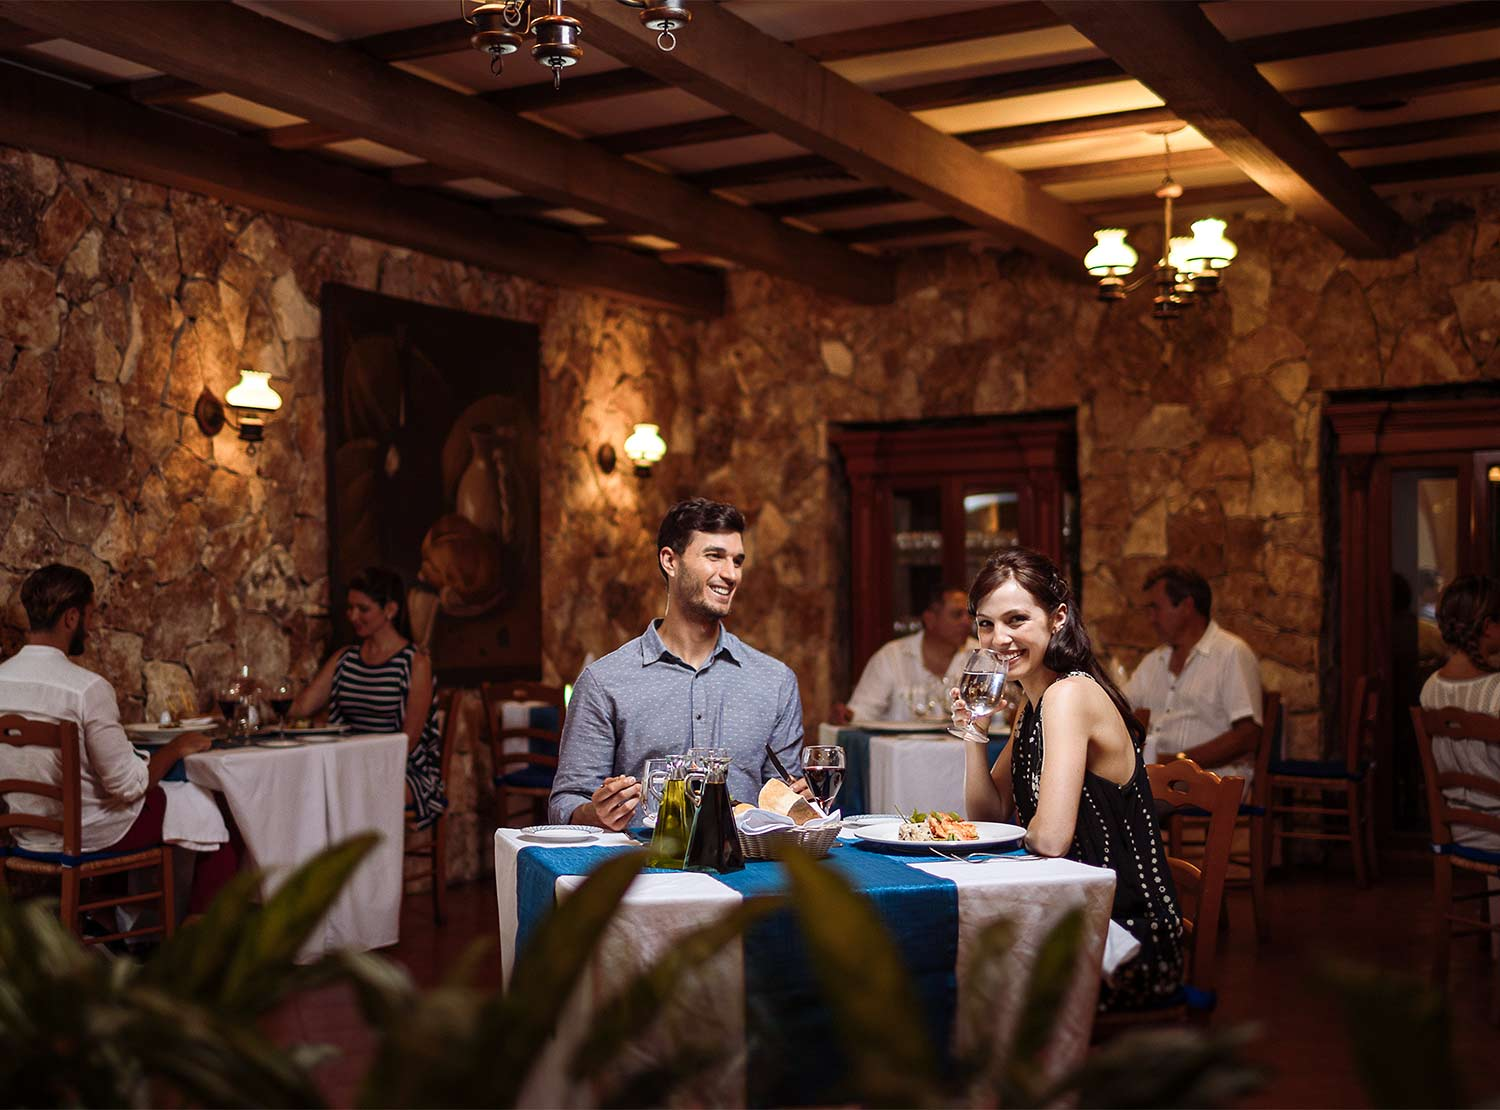 Restaurante Los Olivos Occidental at Xcaret Destination